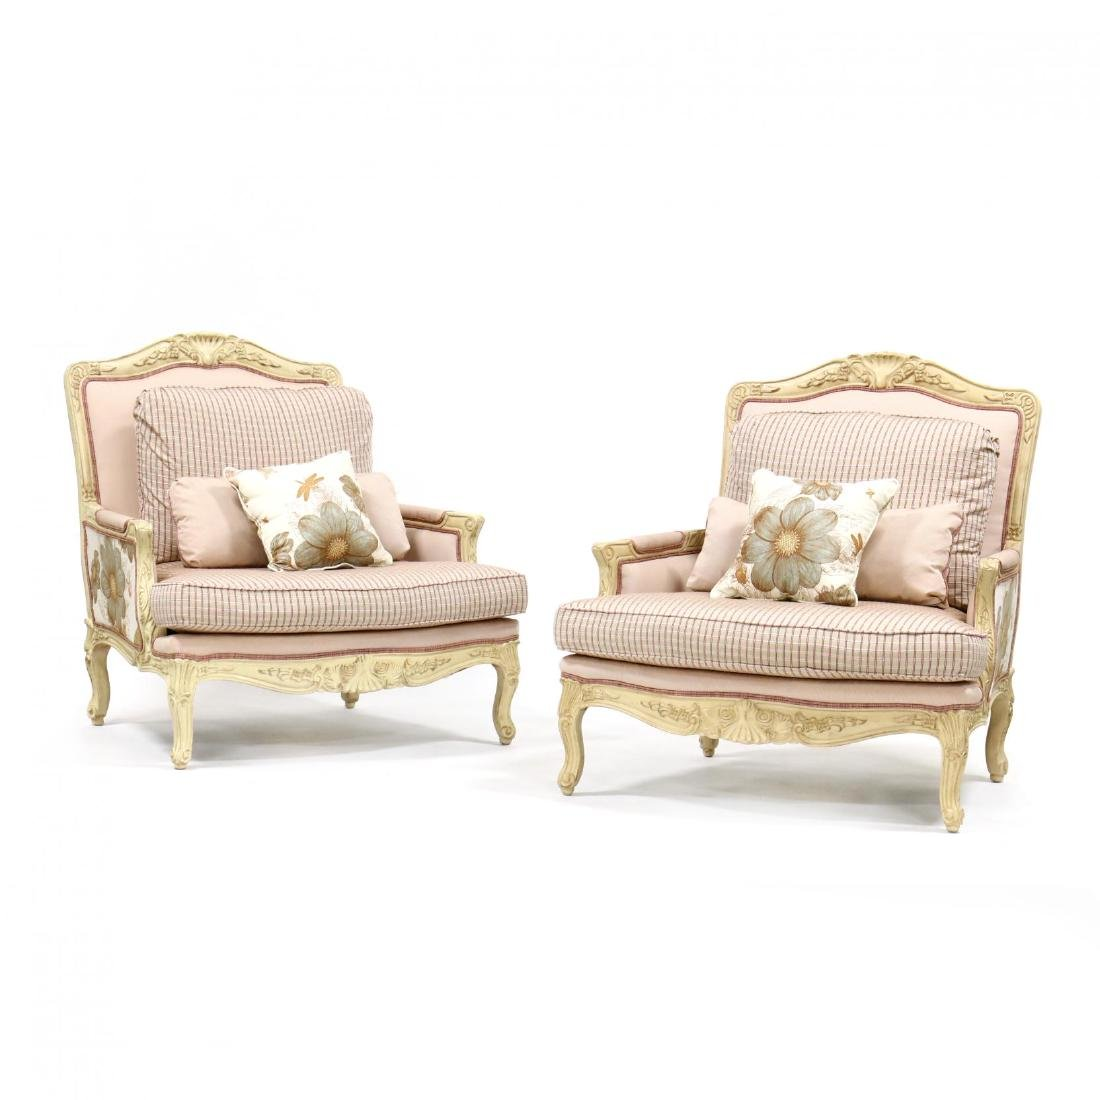 Pair of French Provincial Style Oversized Bergeres